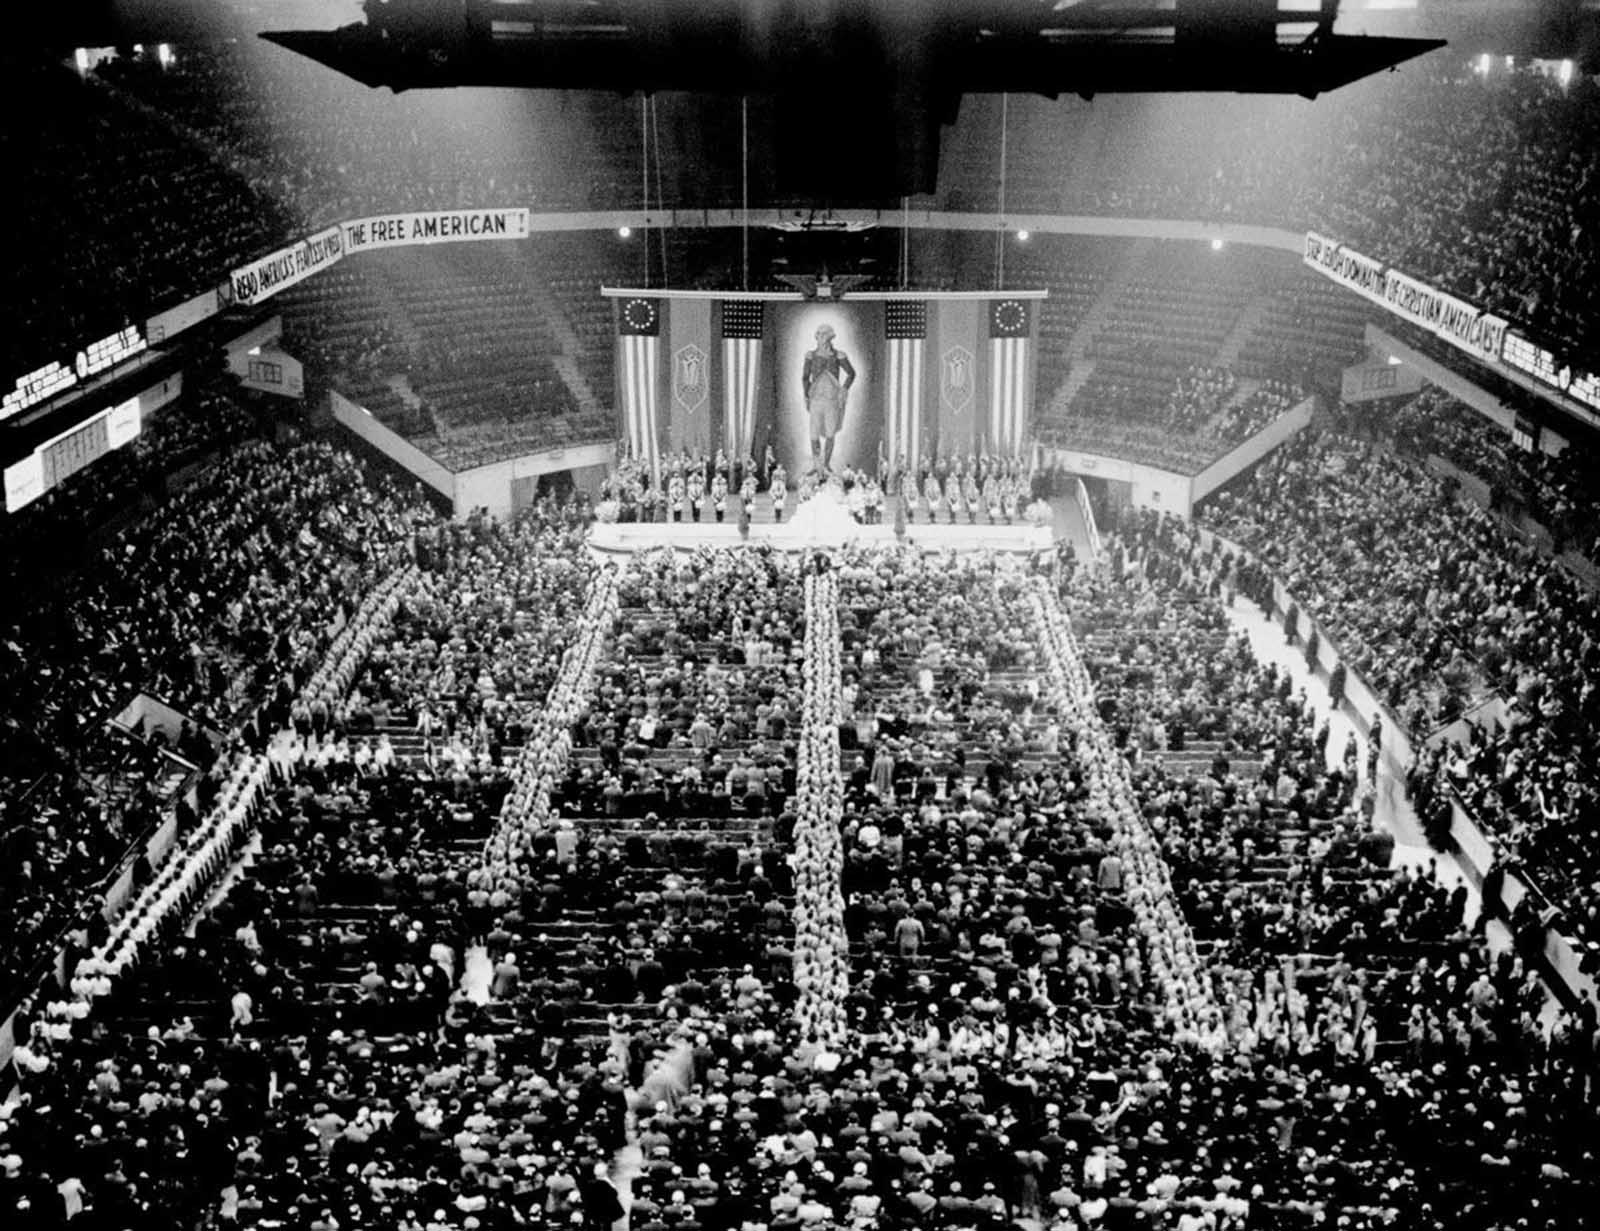 In front of a crowd of 22,000, flanked by a massive portrait of George Washington, swastikas and Americans flags, Kuhn attacked President Roosevelt for being part of a Bolshevik-Jewish conspiracy.